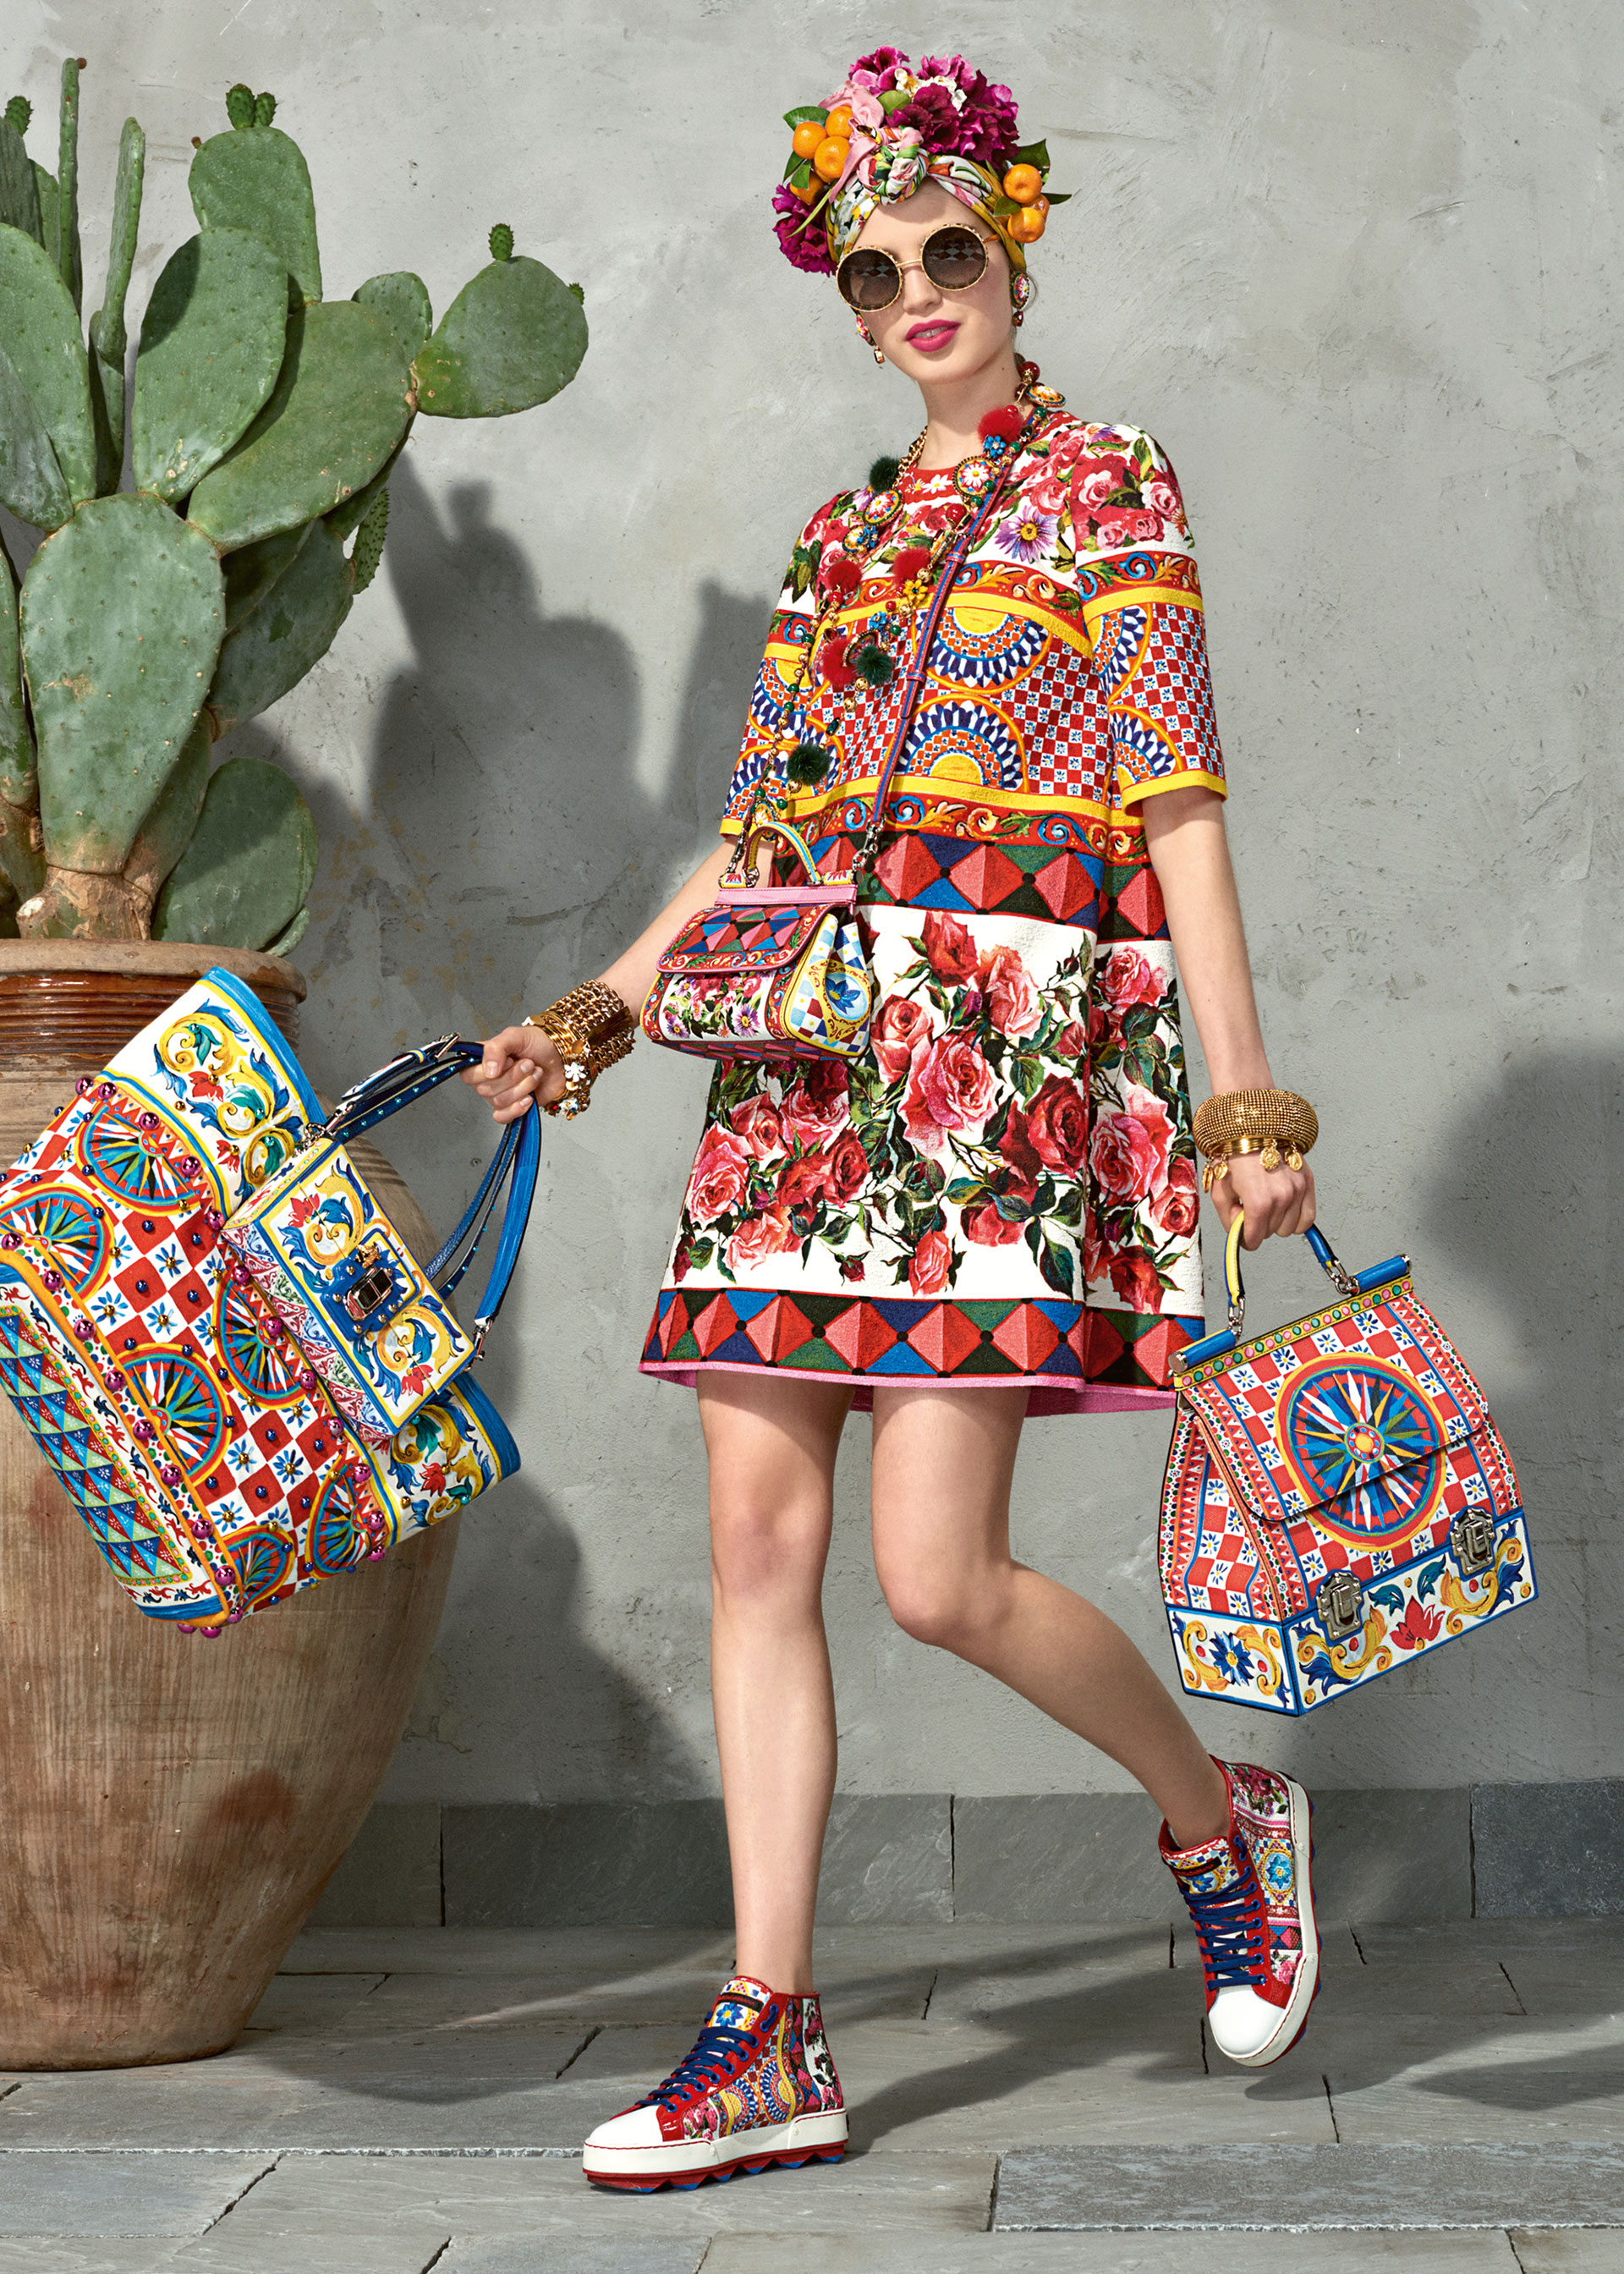 dolce and gabbana summer 2017 woman collection 109 - Dolce & Gabbana/Spring Summer 2017 Collection/ Mambo